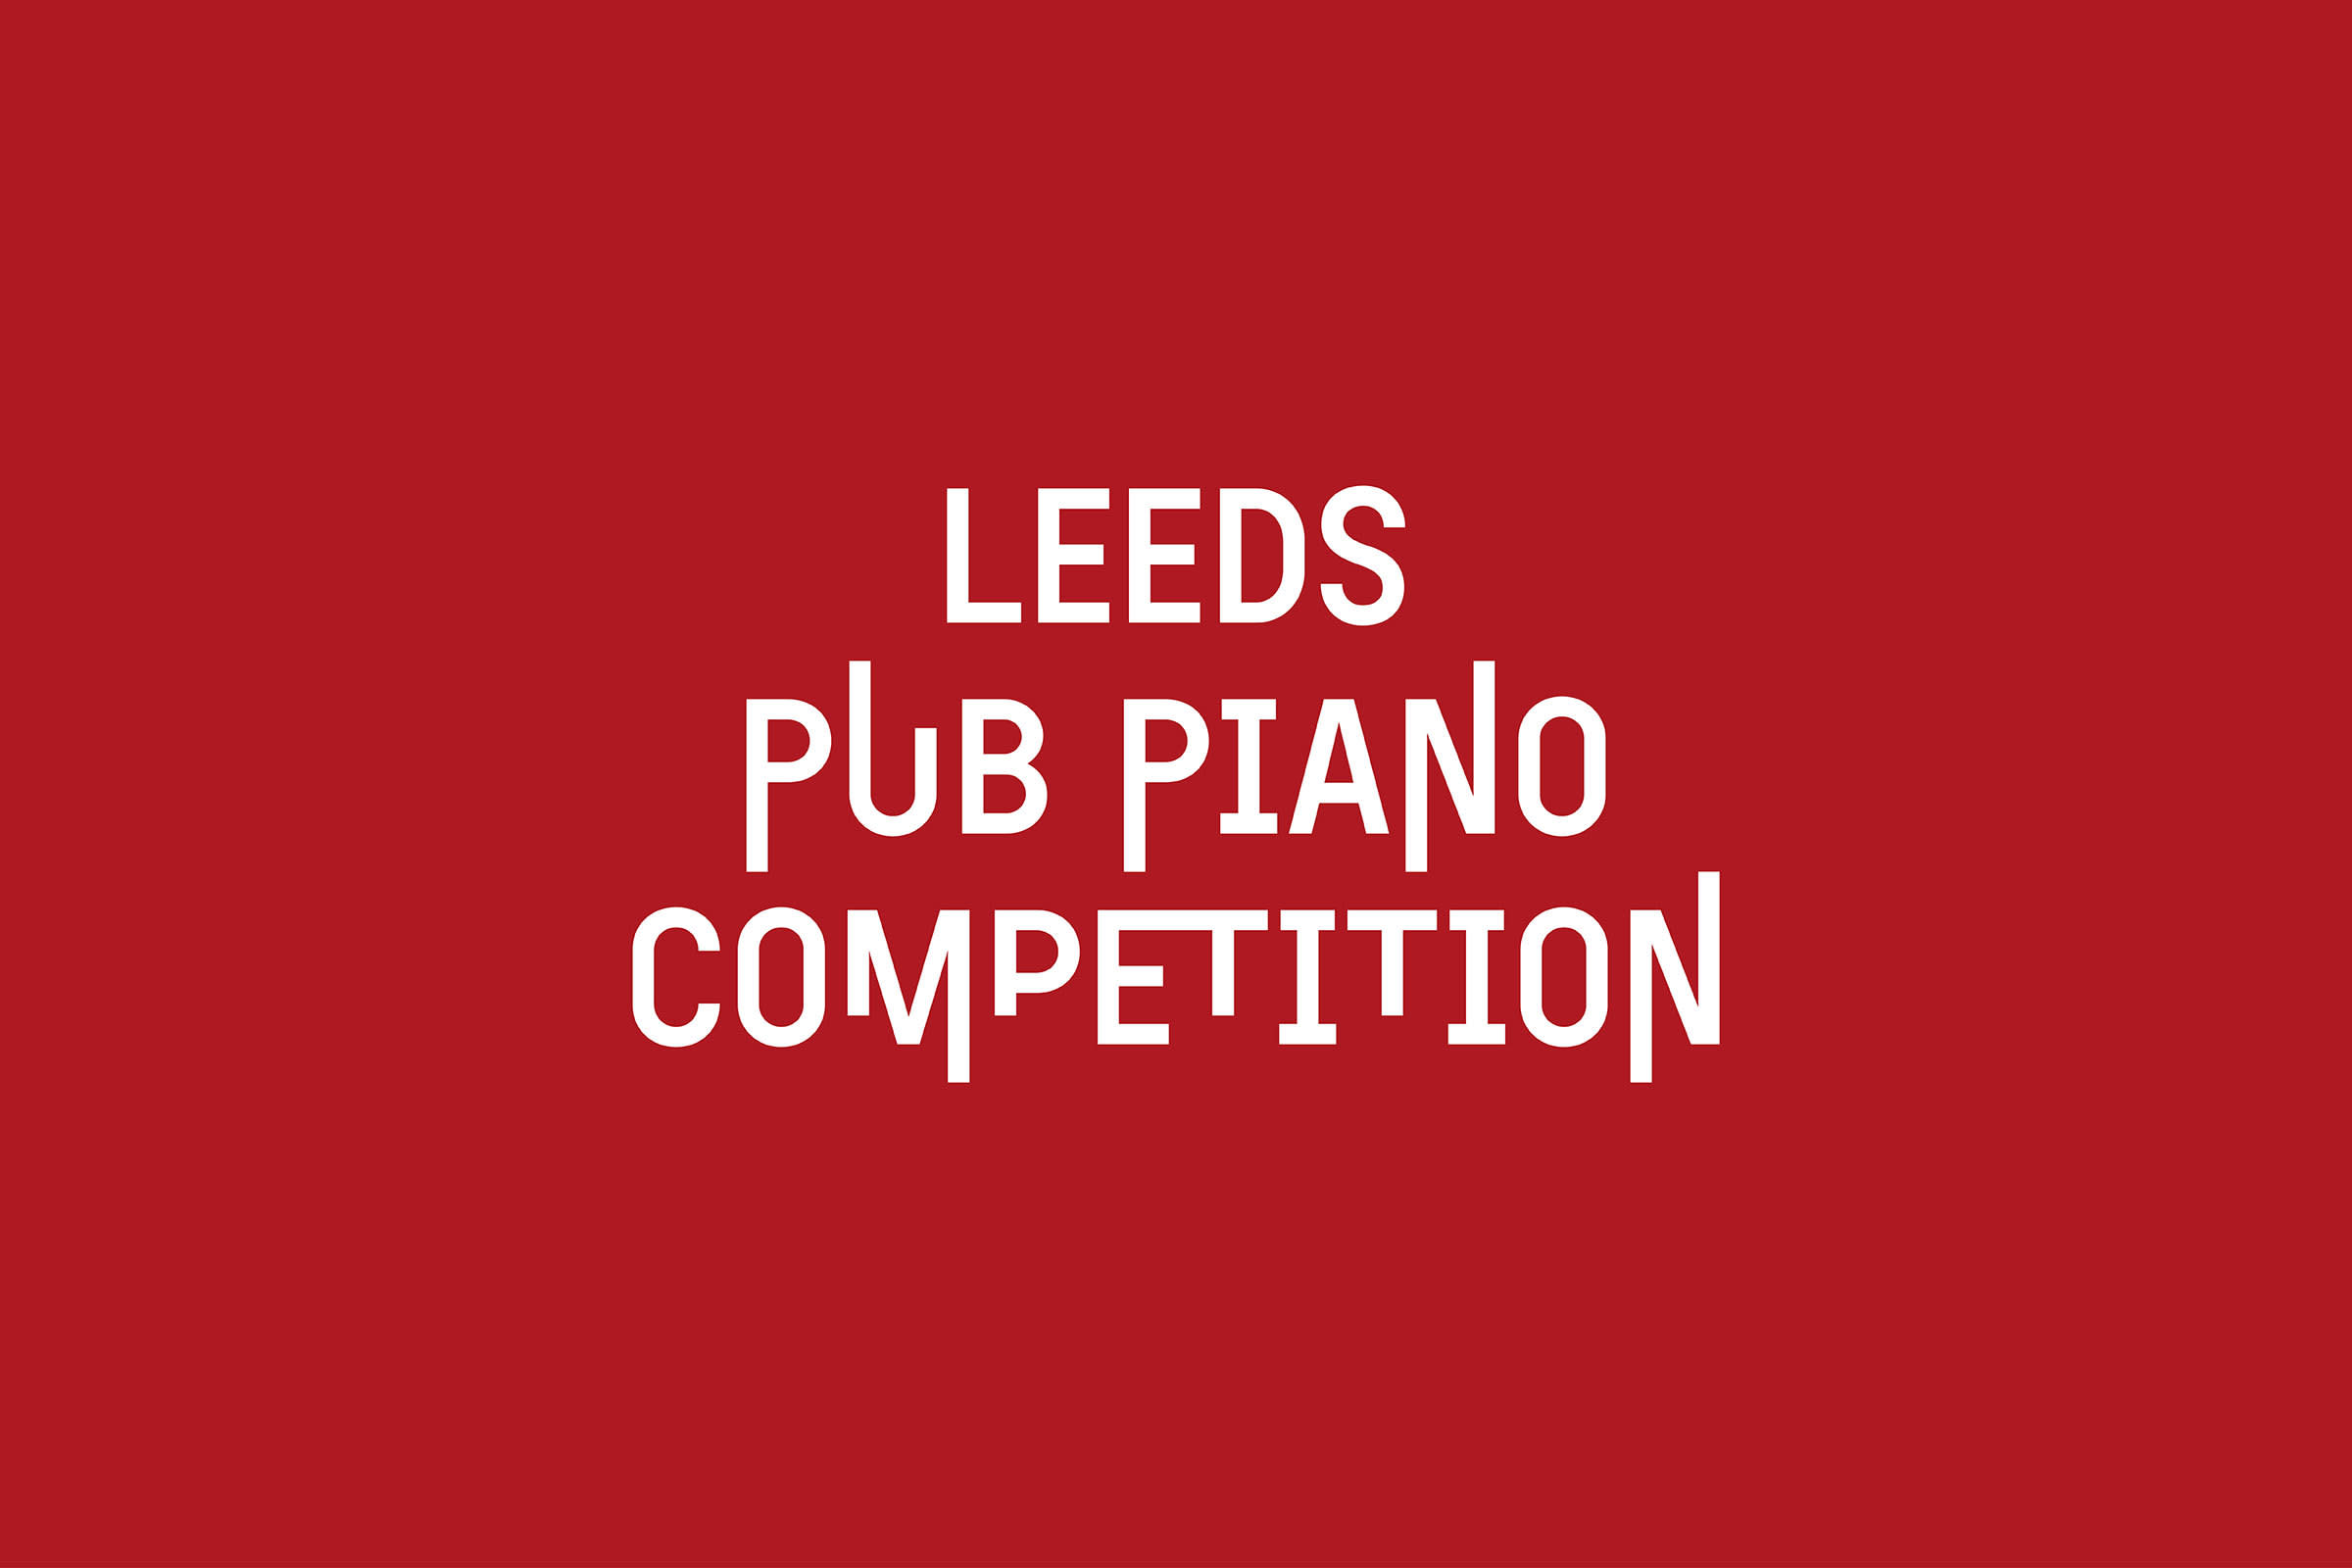 saul studio — Leeds Pub Piano Competition